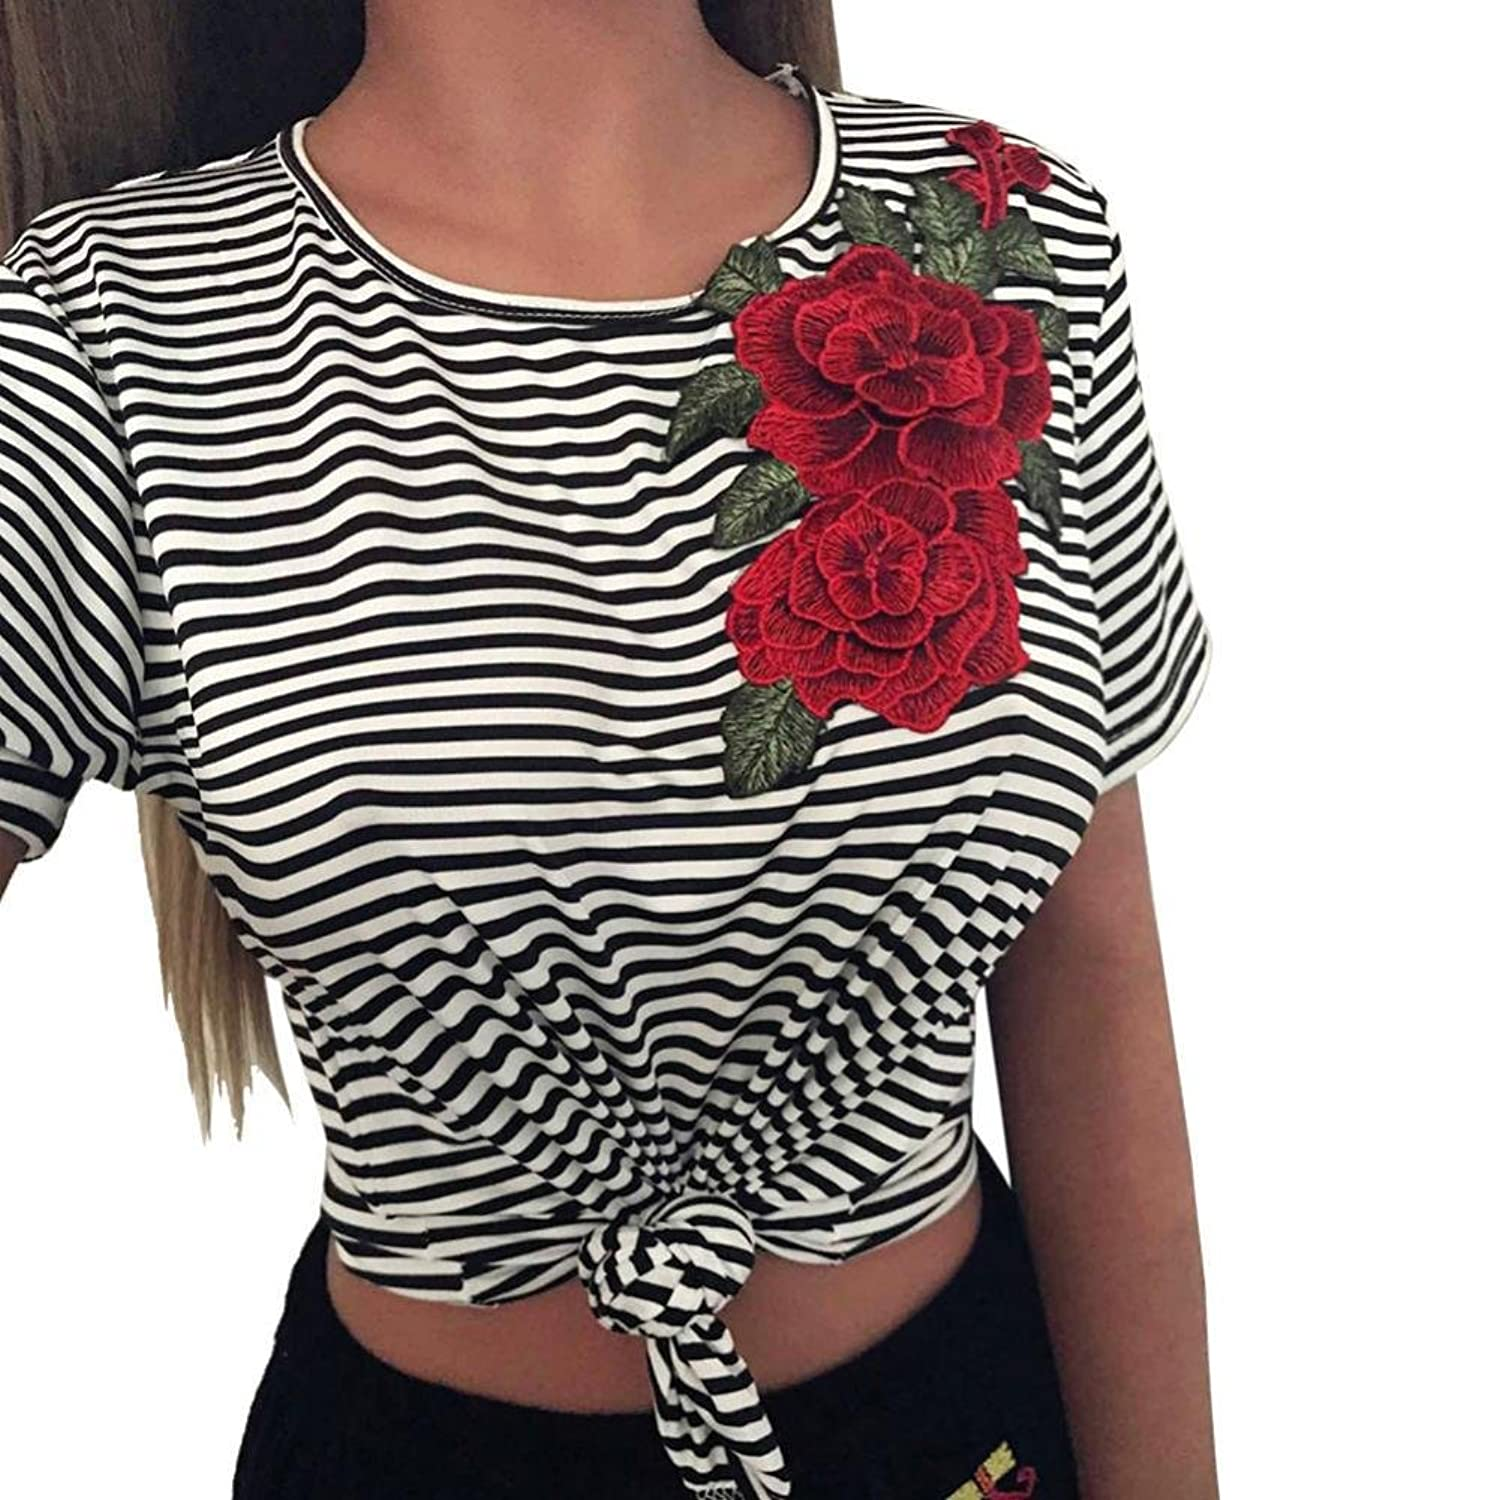 Amazon.com: DondPO Women Fashion Short Sleeve T Shirt Sexy Bare Midriff Striated Appliques Rose Blouse Summer Tops: Clothing